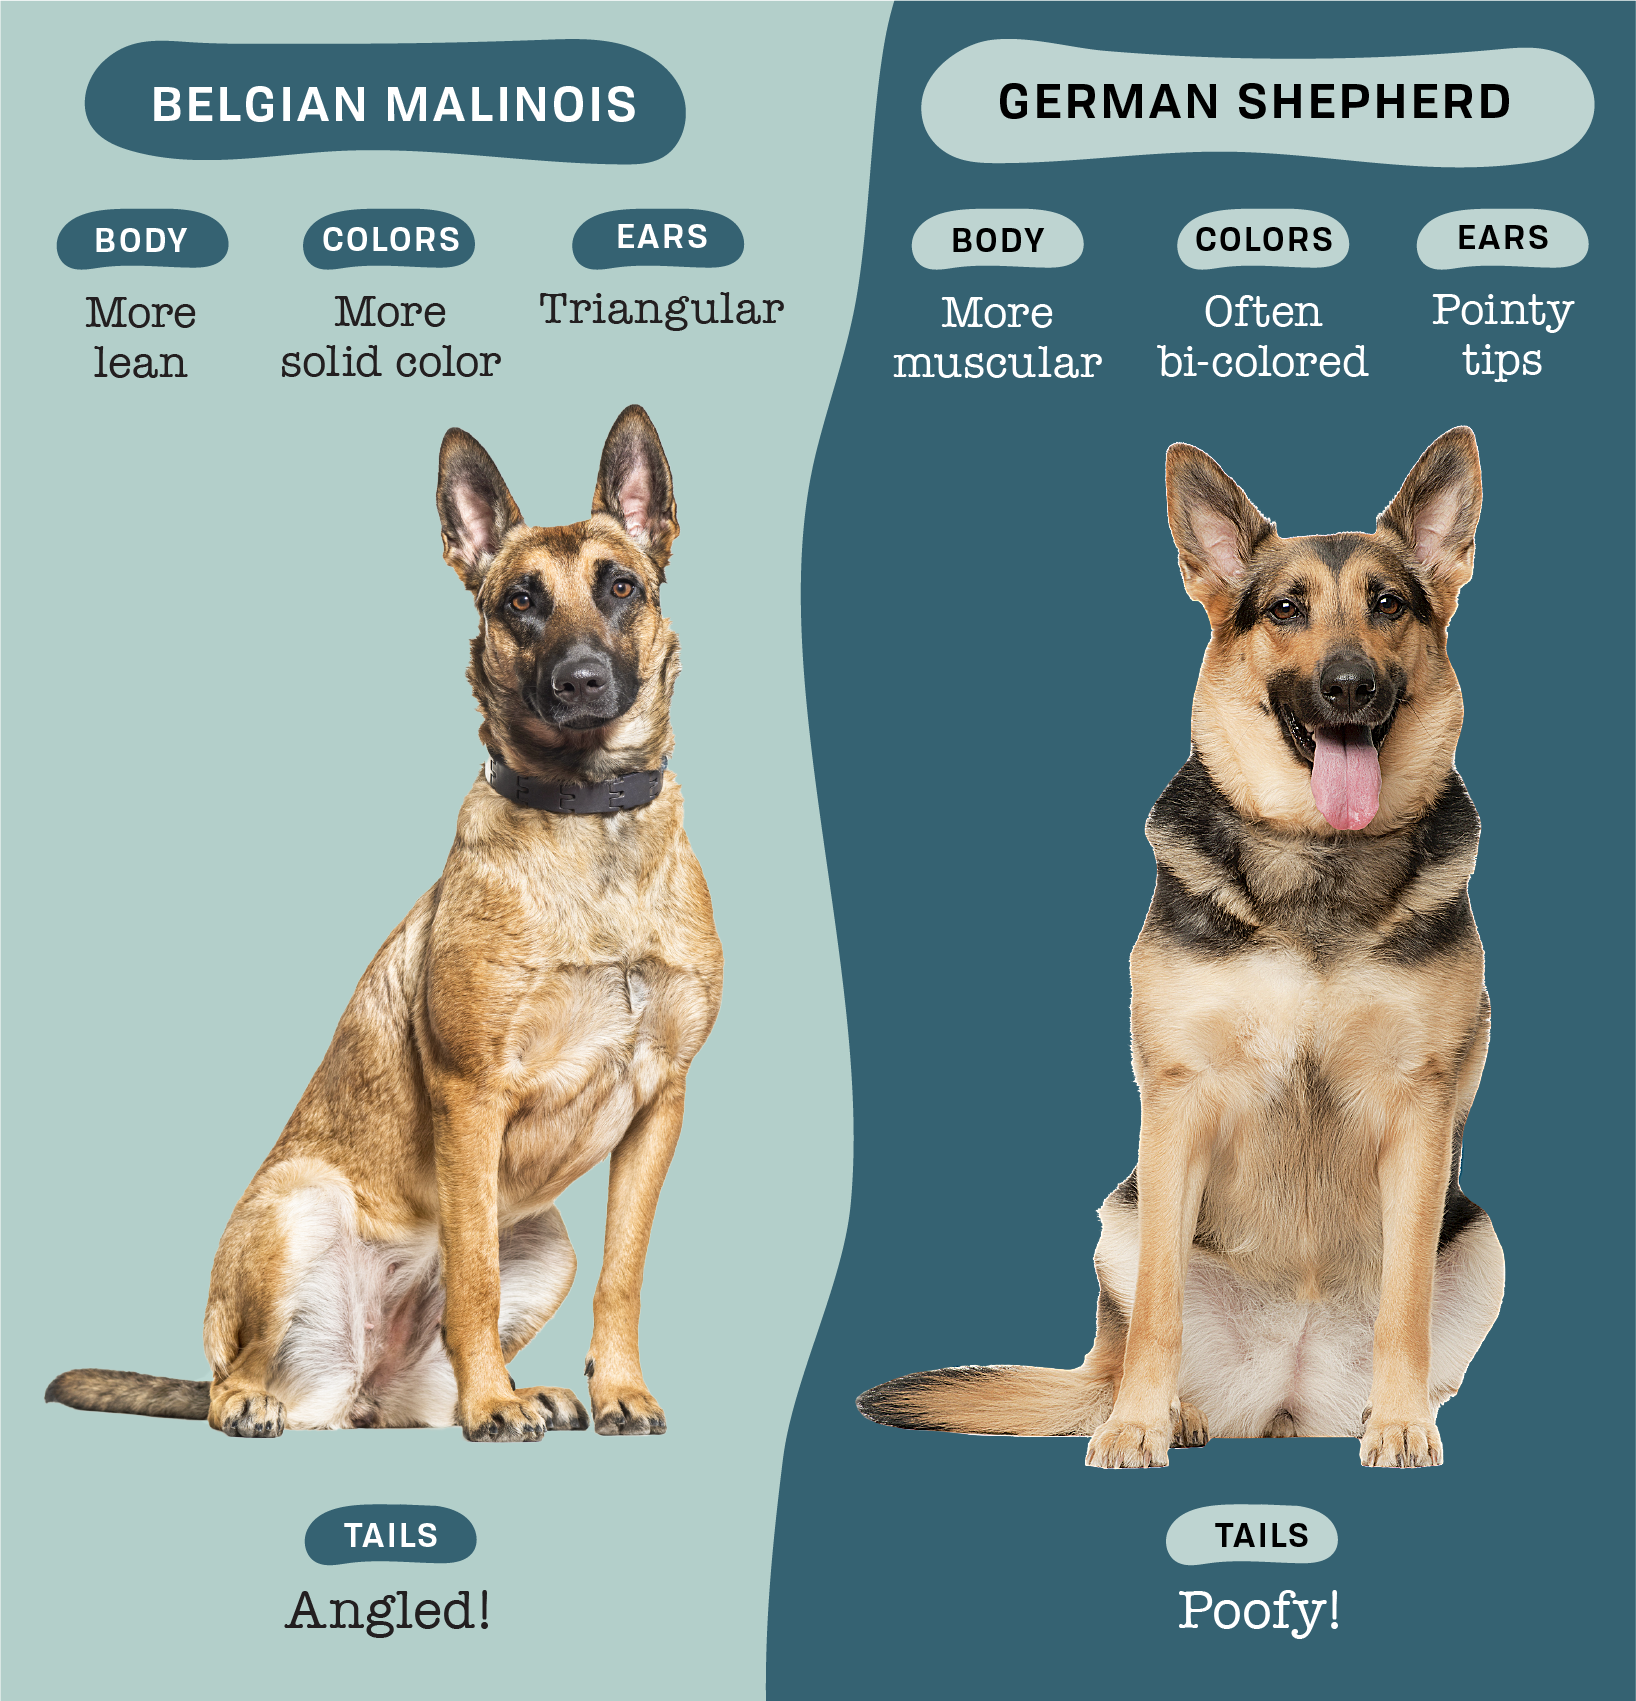 Belgian Malinois and German Shepherd side by side with copy pointing differences